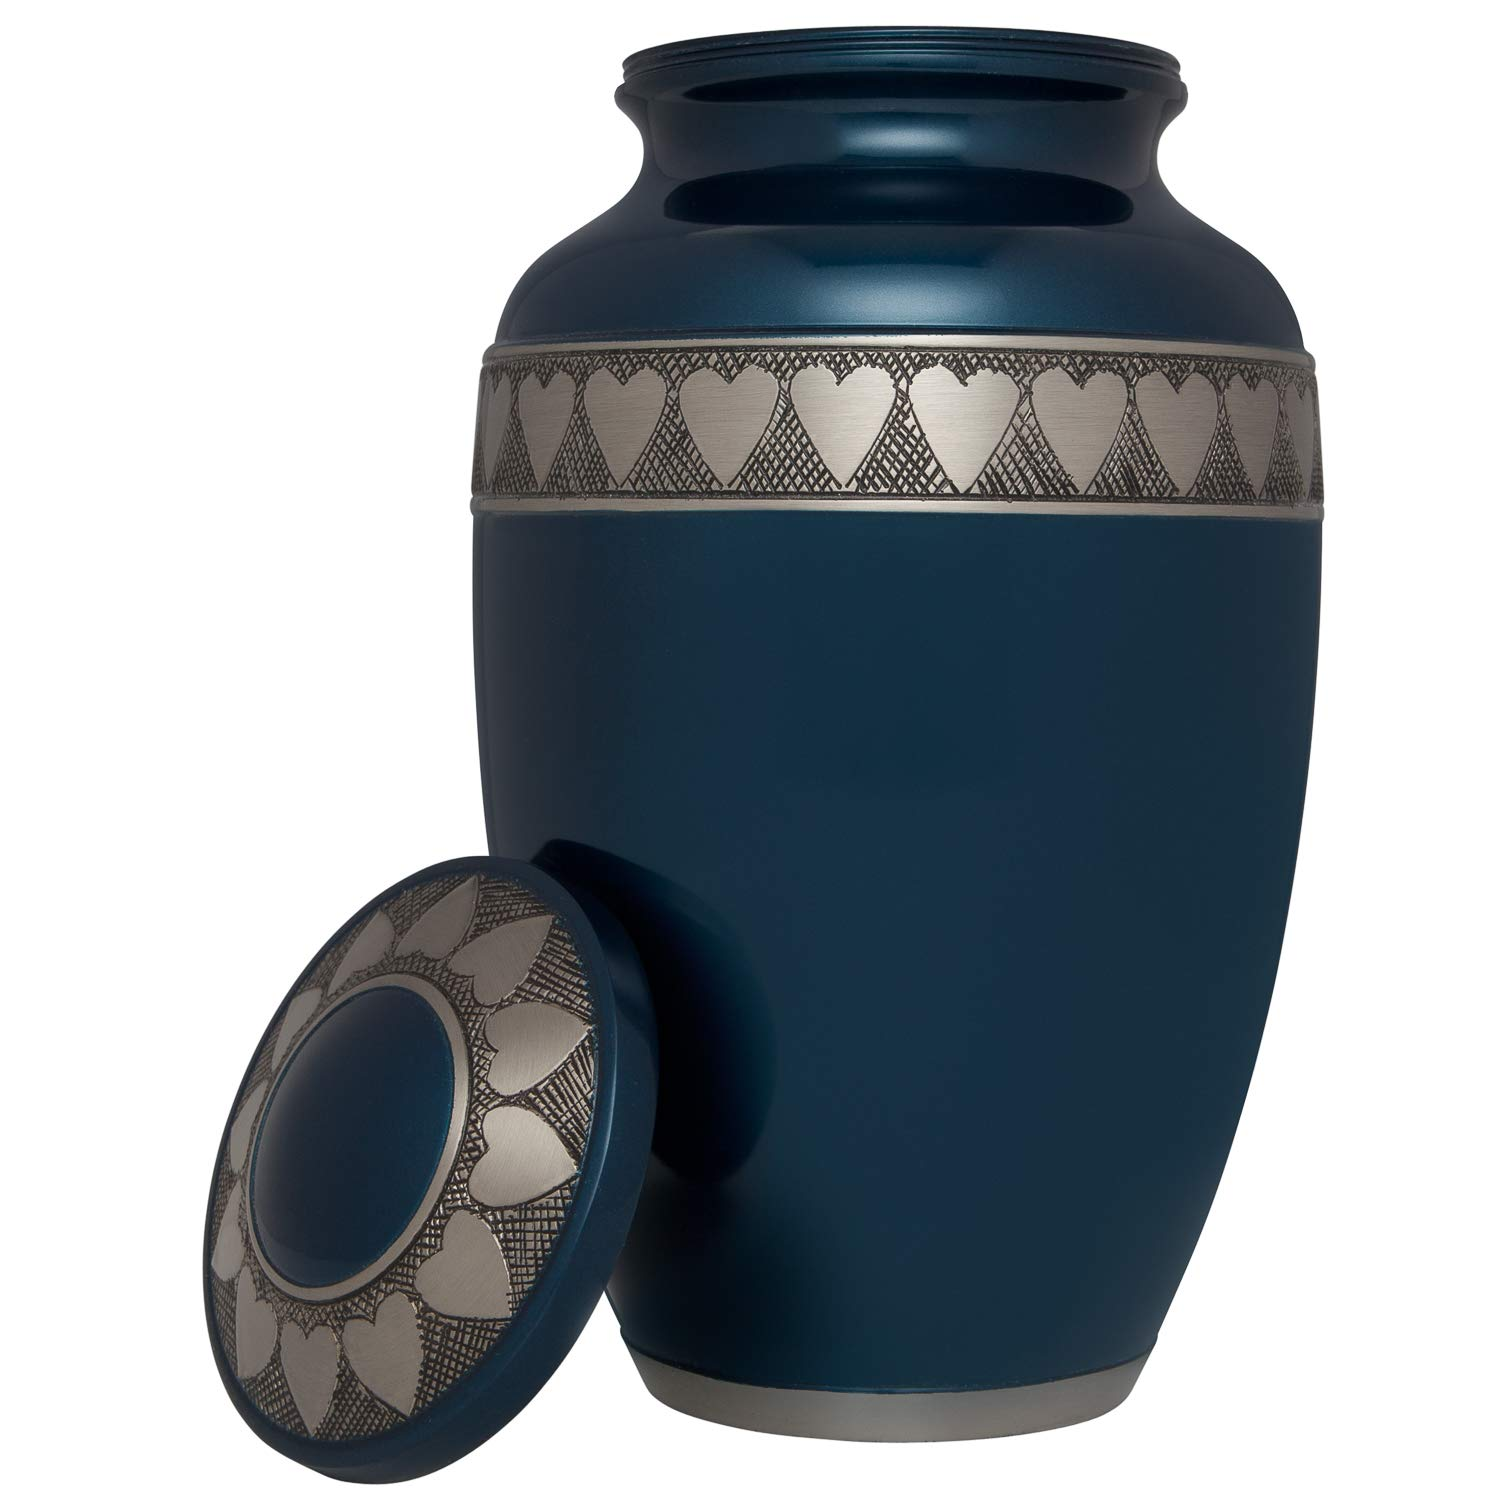 Liliane Memorials Blue Funeral Cremation Urn with Engraved Hearts Corazones Model in Brass for Human Ashes Suitable for Cemetery Burial Large Size Fits Remains of Adults up to 200 lbs, Large 200 lb,